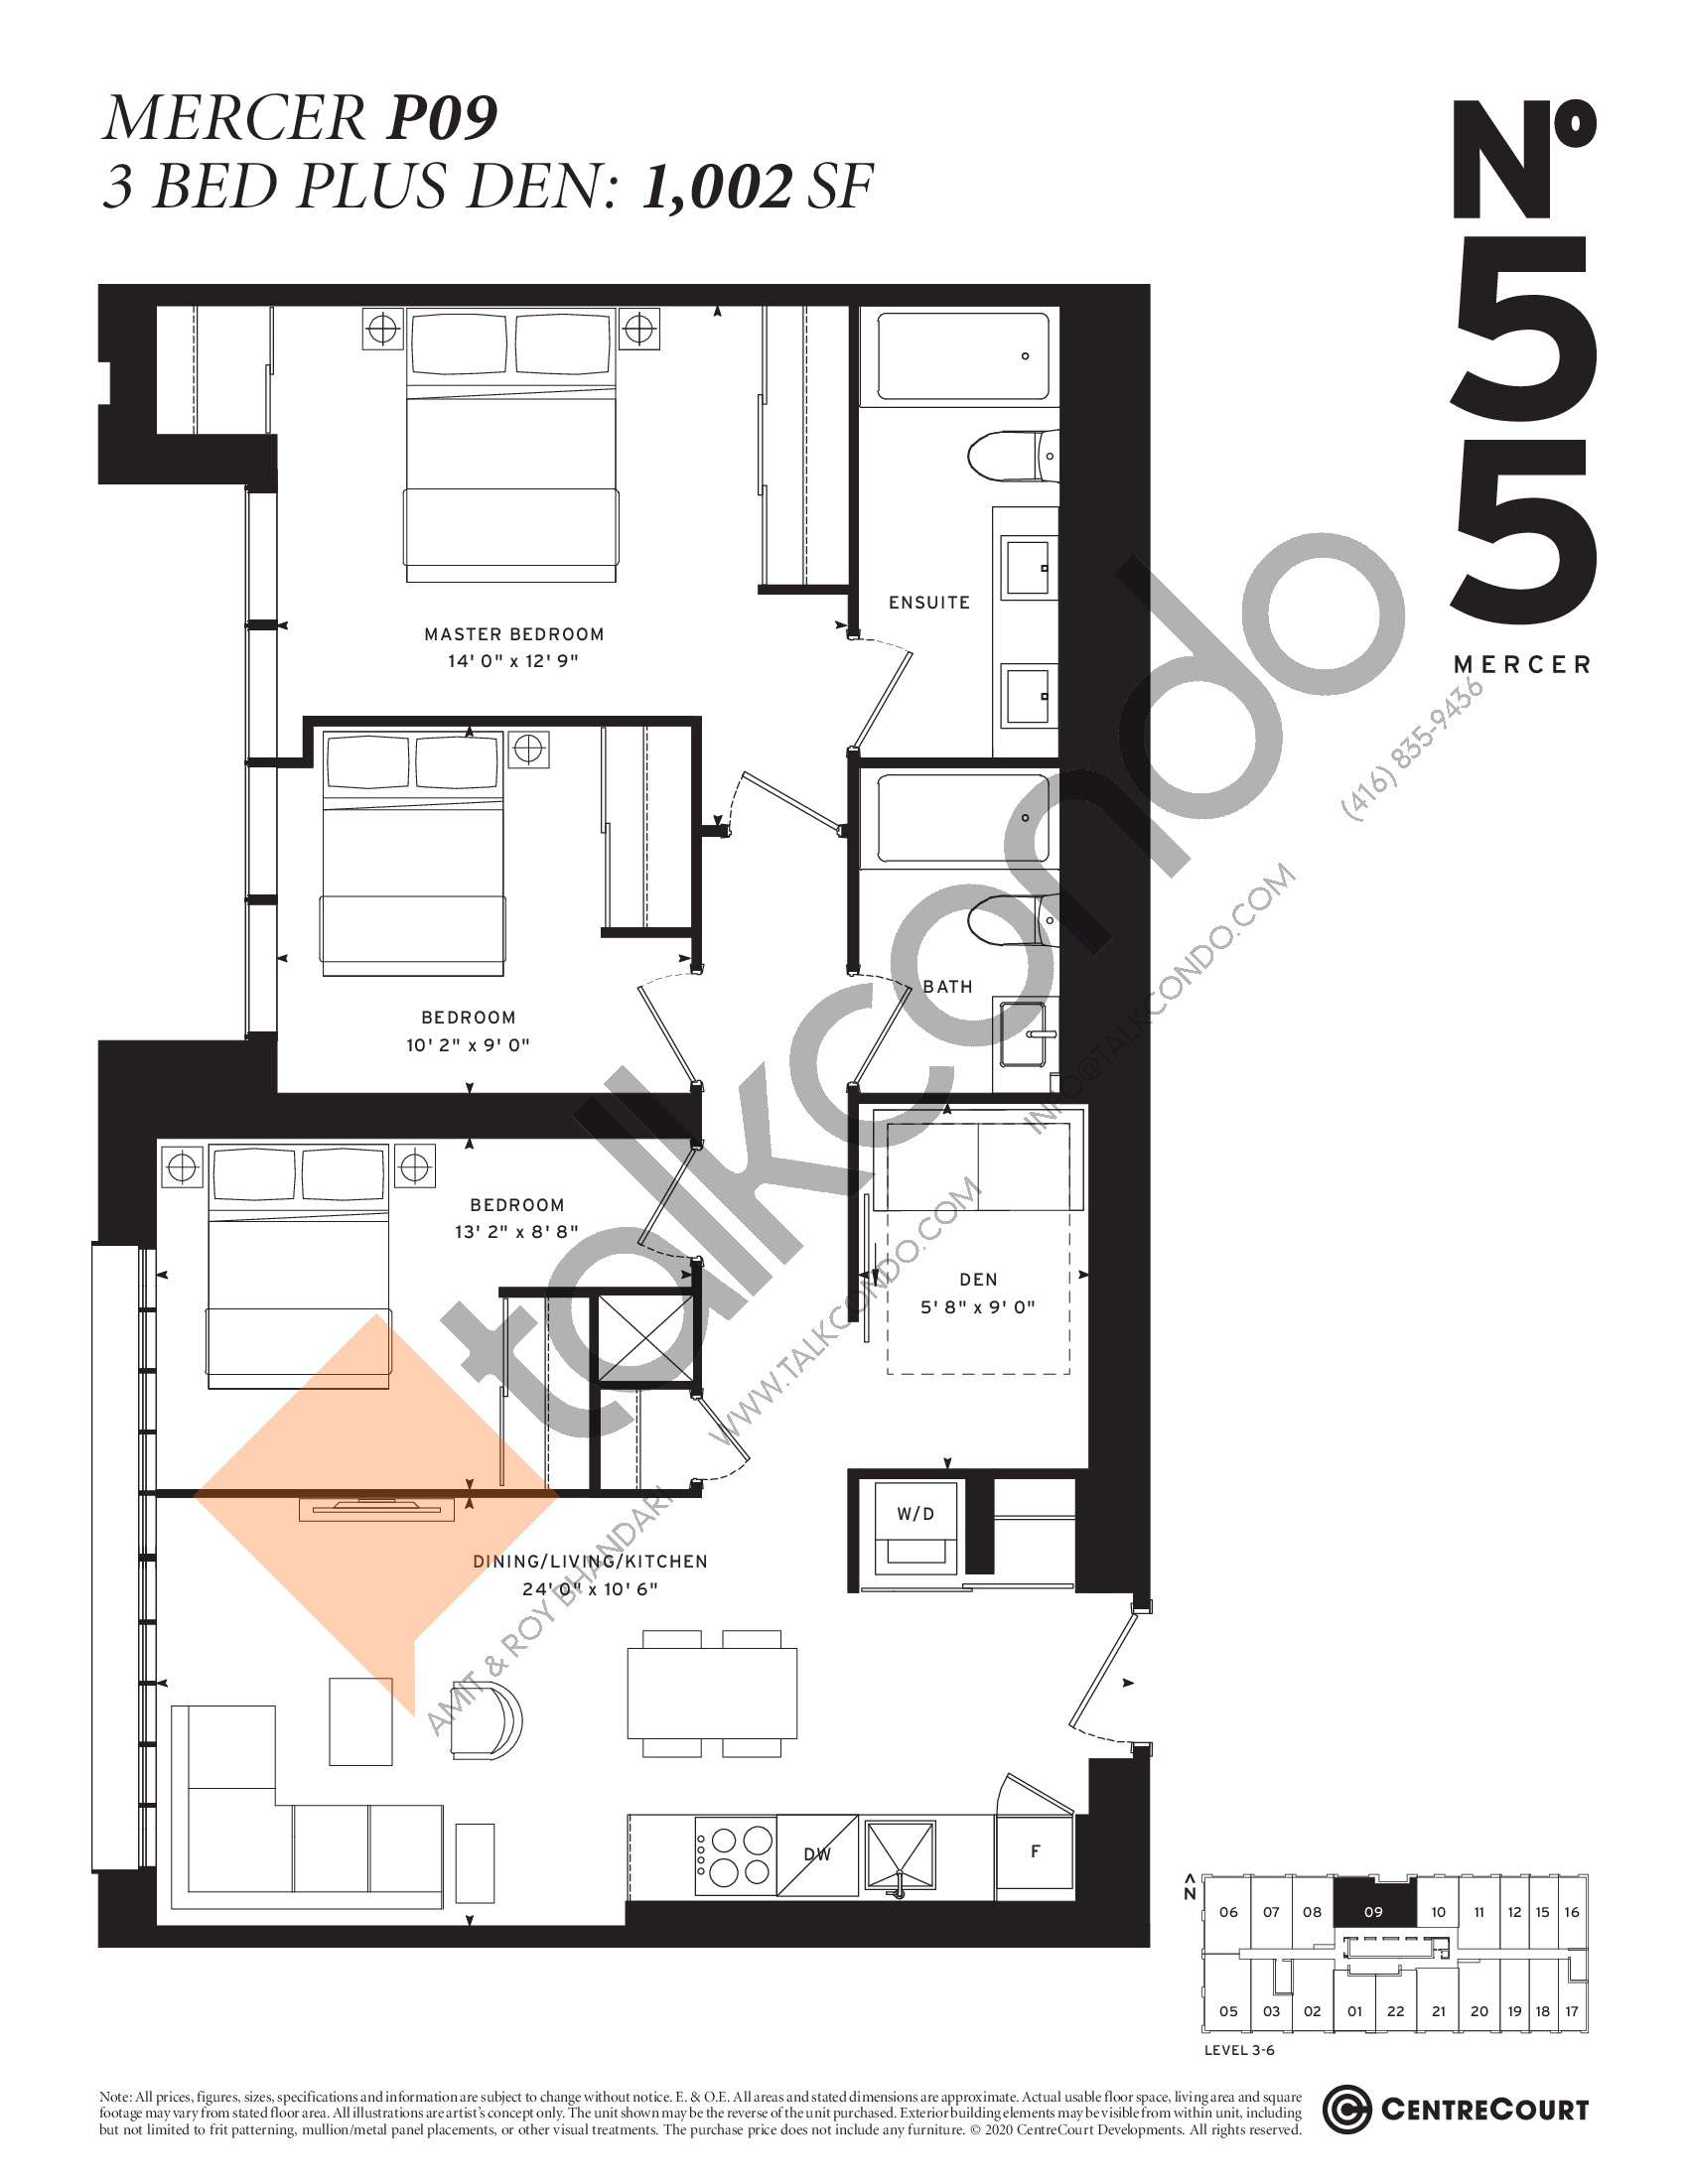 Mercer P09 Floor Plan at No. 55 Mercer Condos - 1002 sq.ft